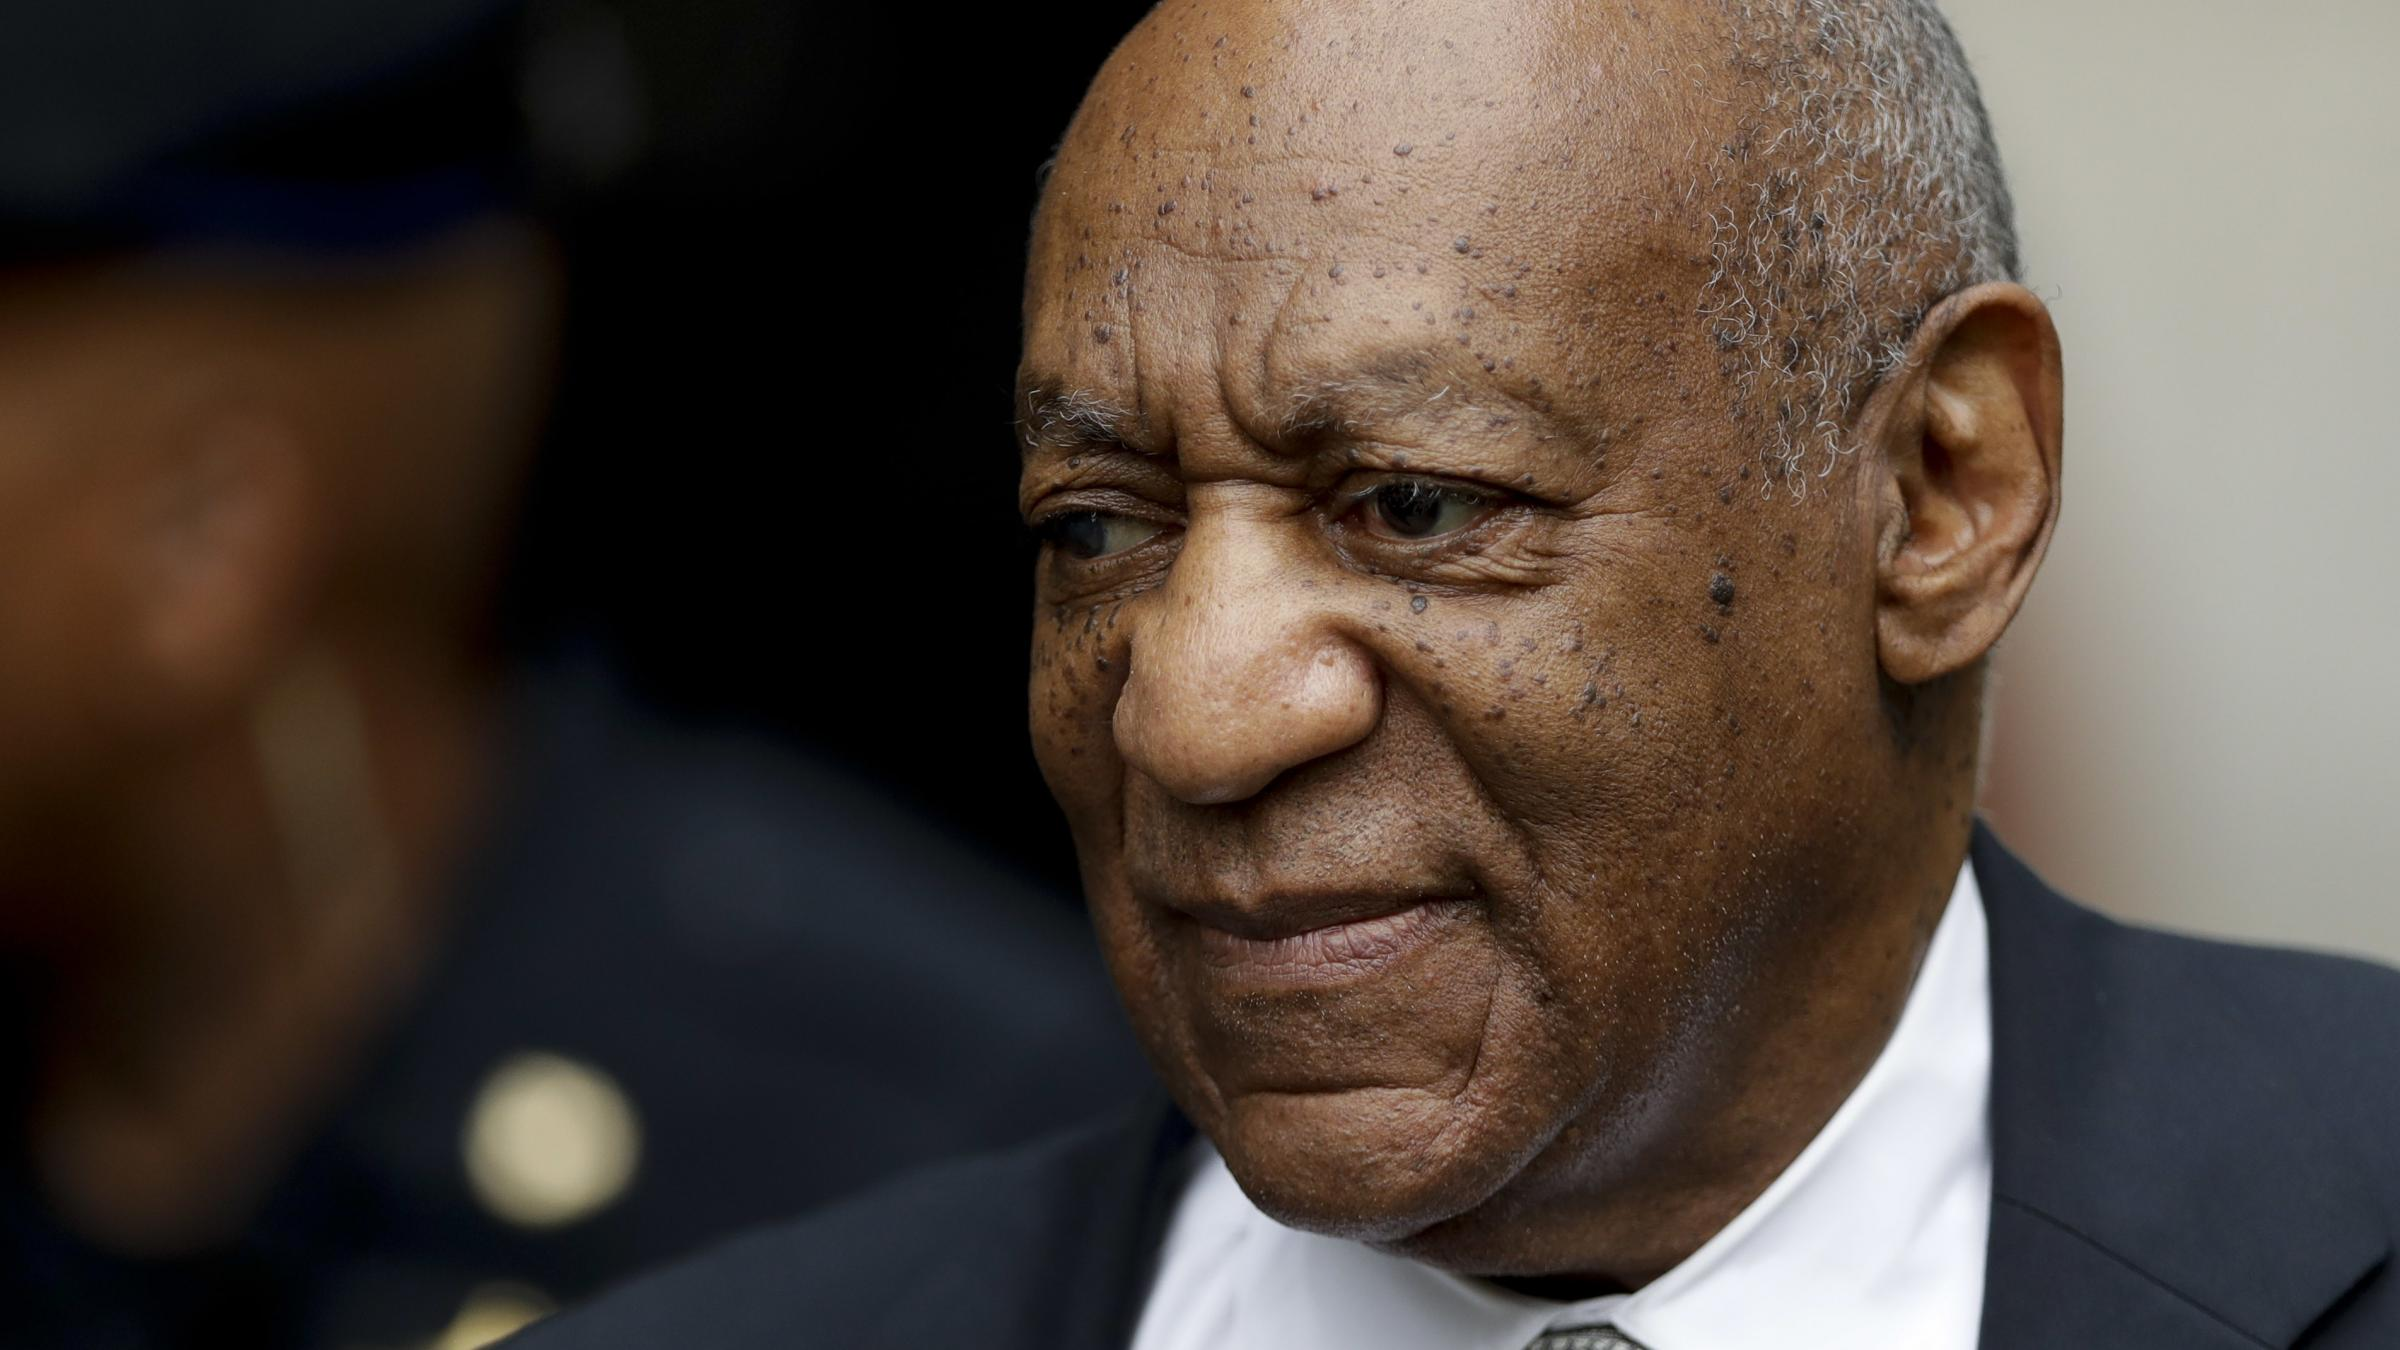 Judge declares mistrial in Cosby case after jurors fail to reach verdict